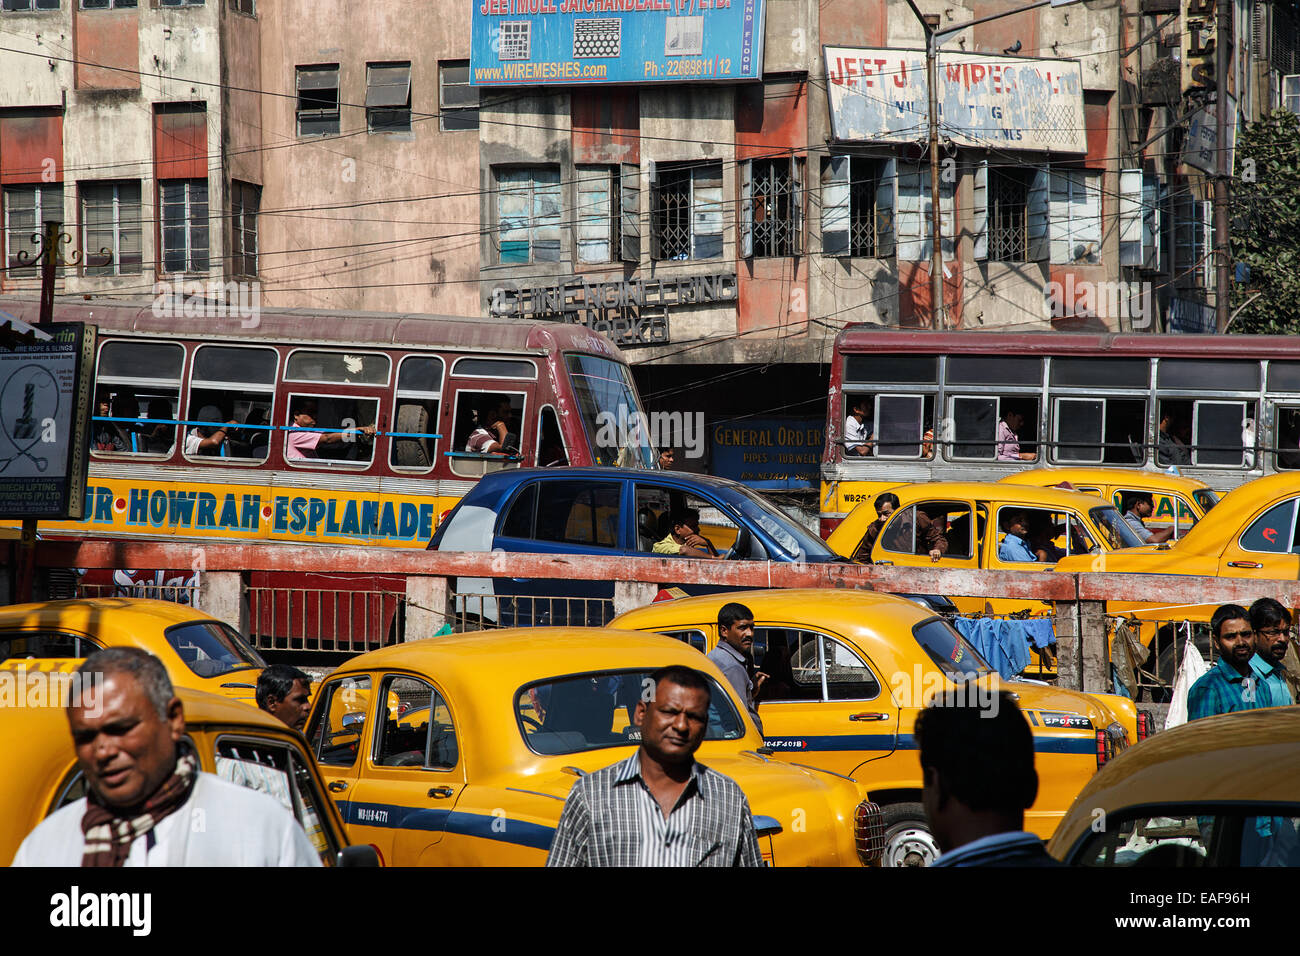 A road traffic with cars, taxis, buses and people on one of the main roads of Central Kolkata, India. - Stock Image